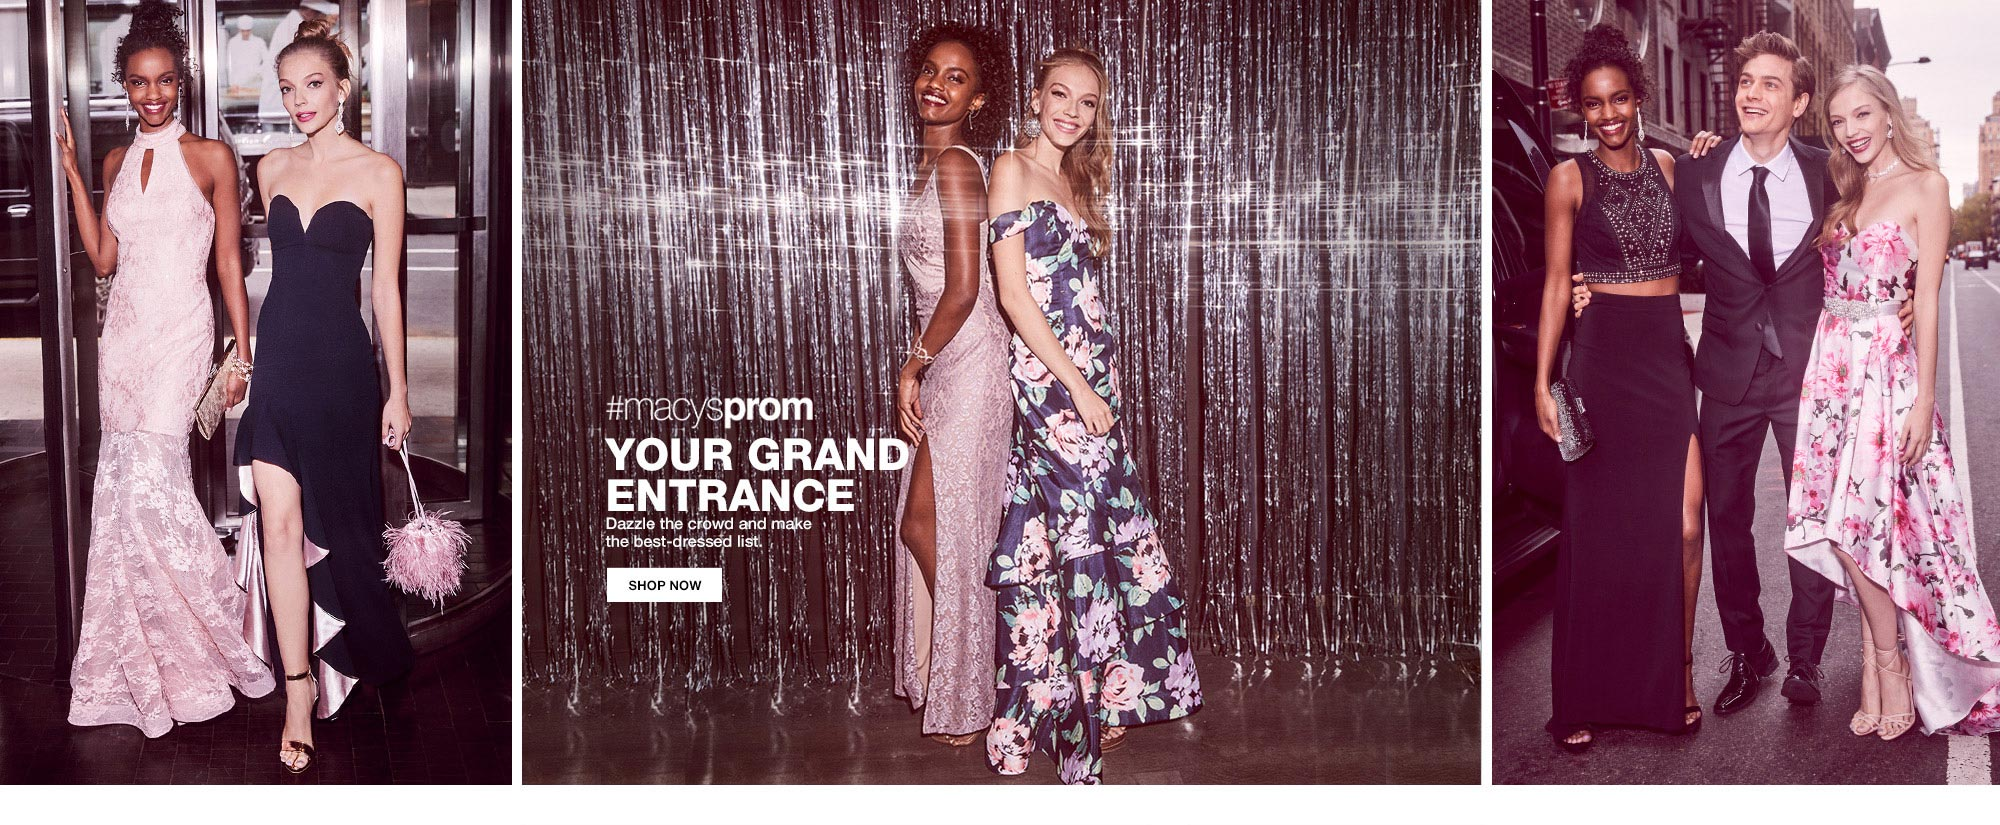 macys prom your grand entrance. dazzle the crowd and make the best dressed list.